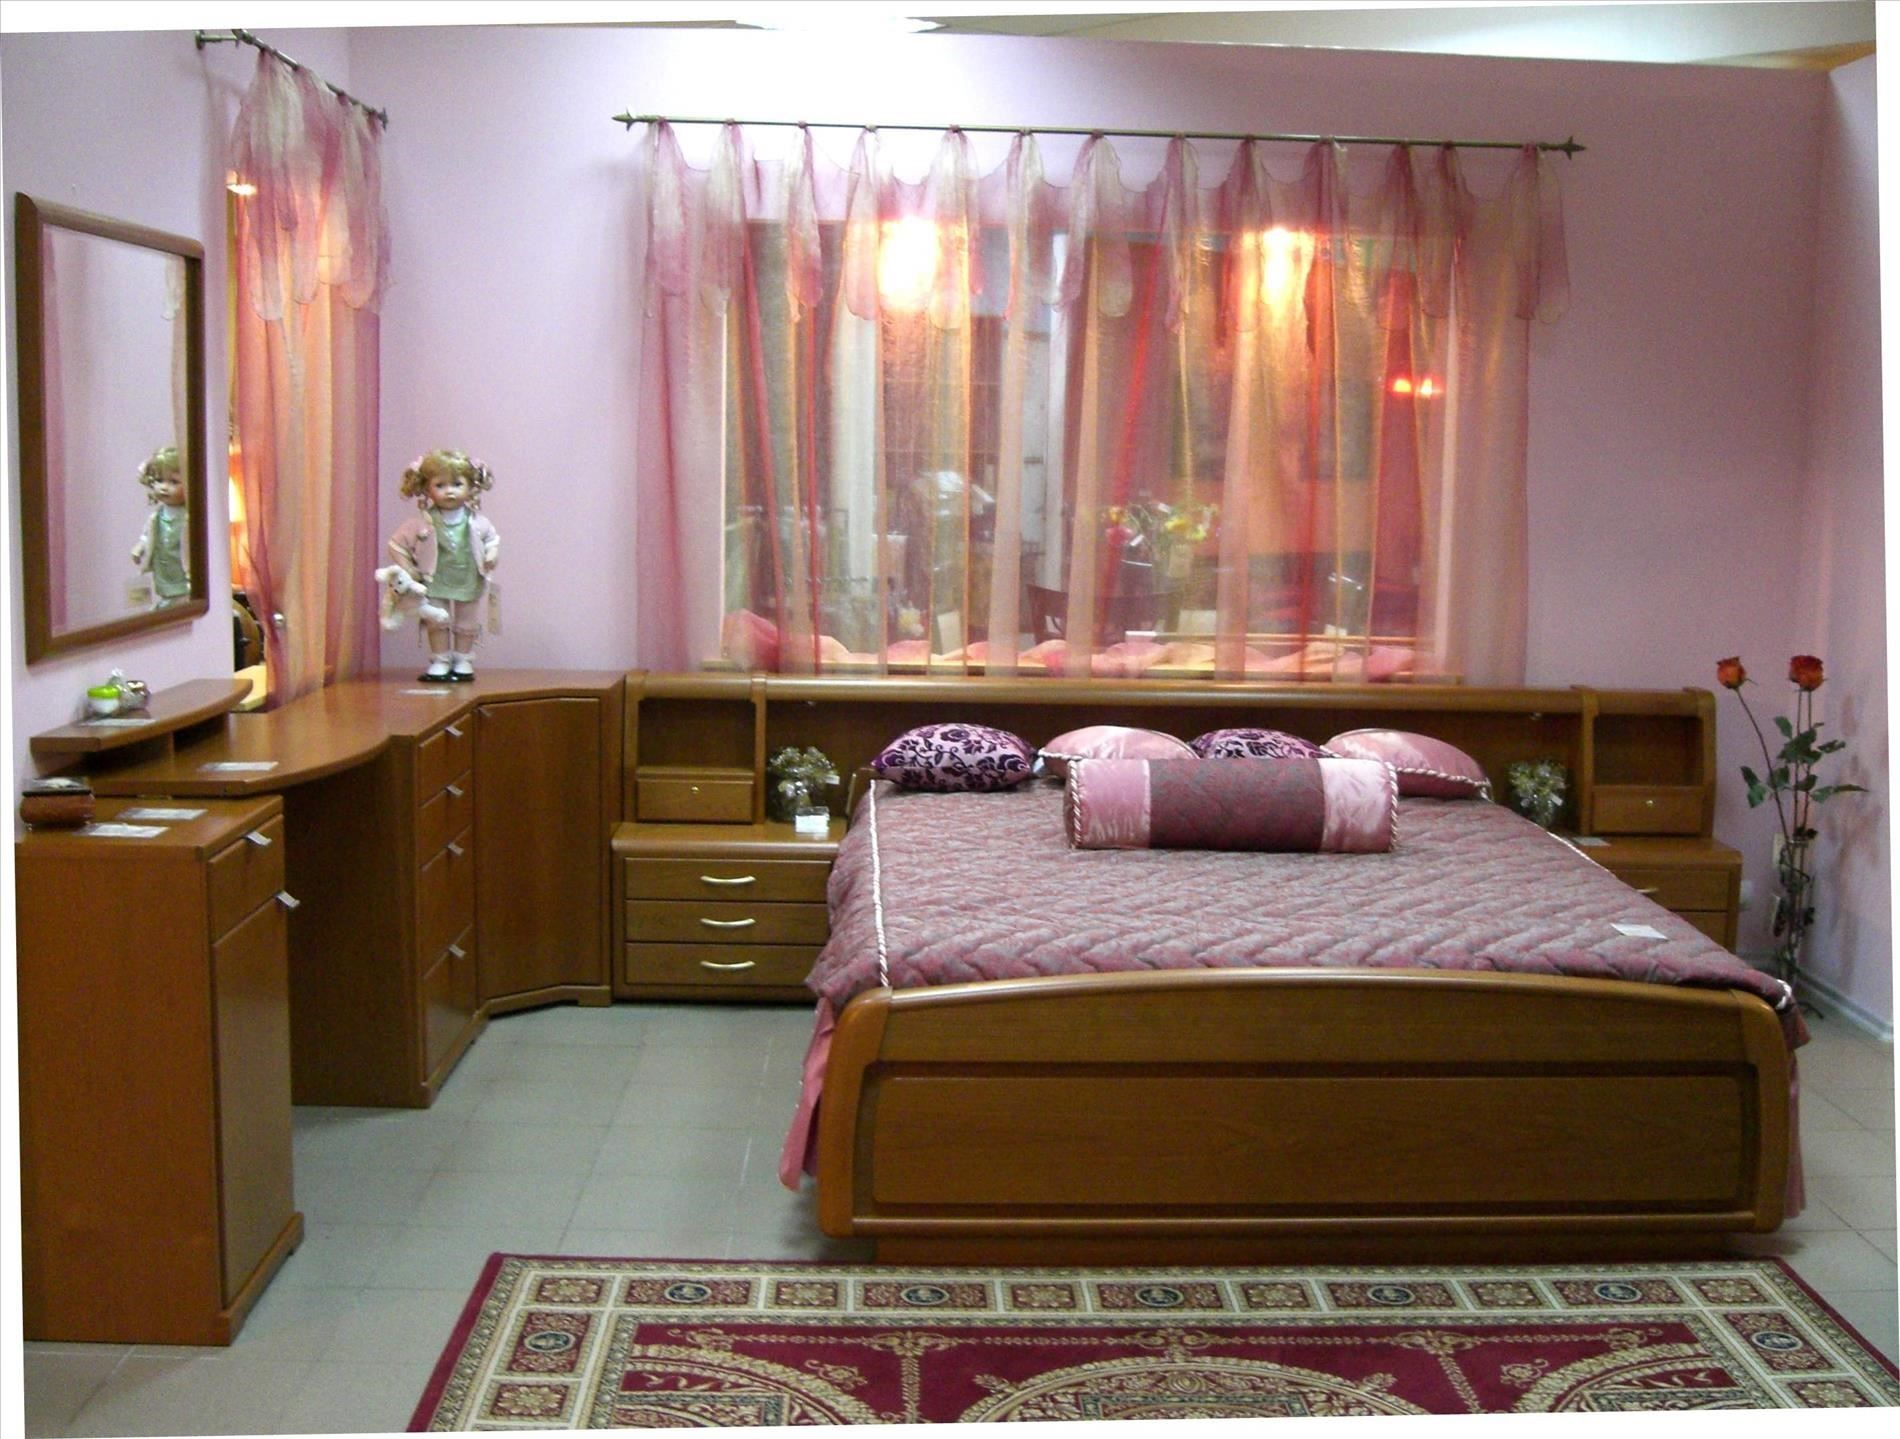 Simple Bedroom Design For Middle Class Family Simple Bedroom Design Apartment Bedroom Design Simple Bedroom